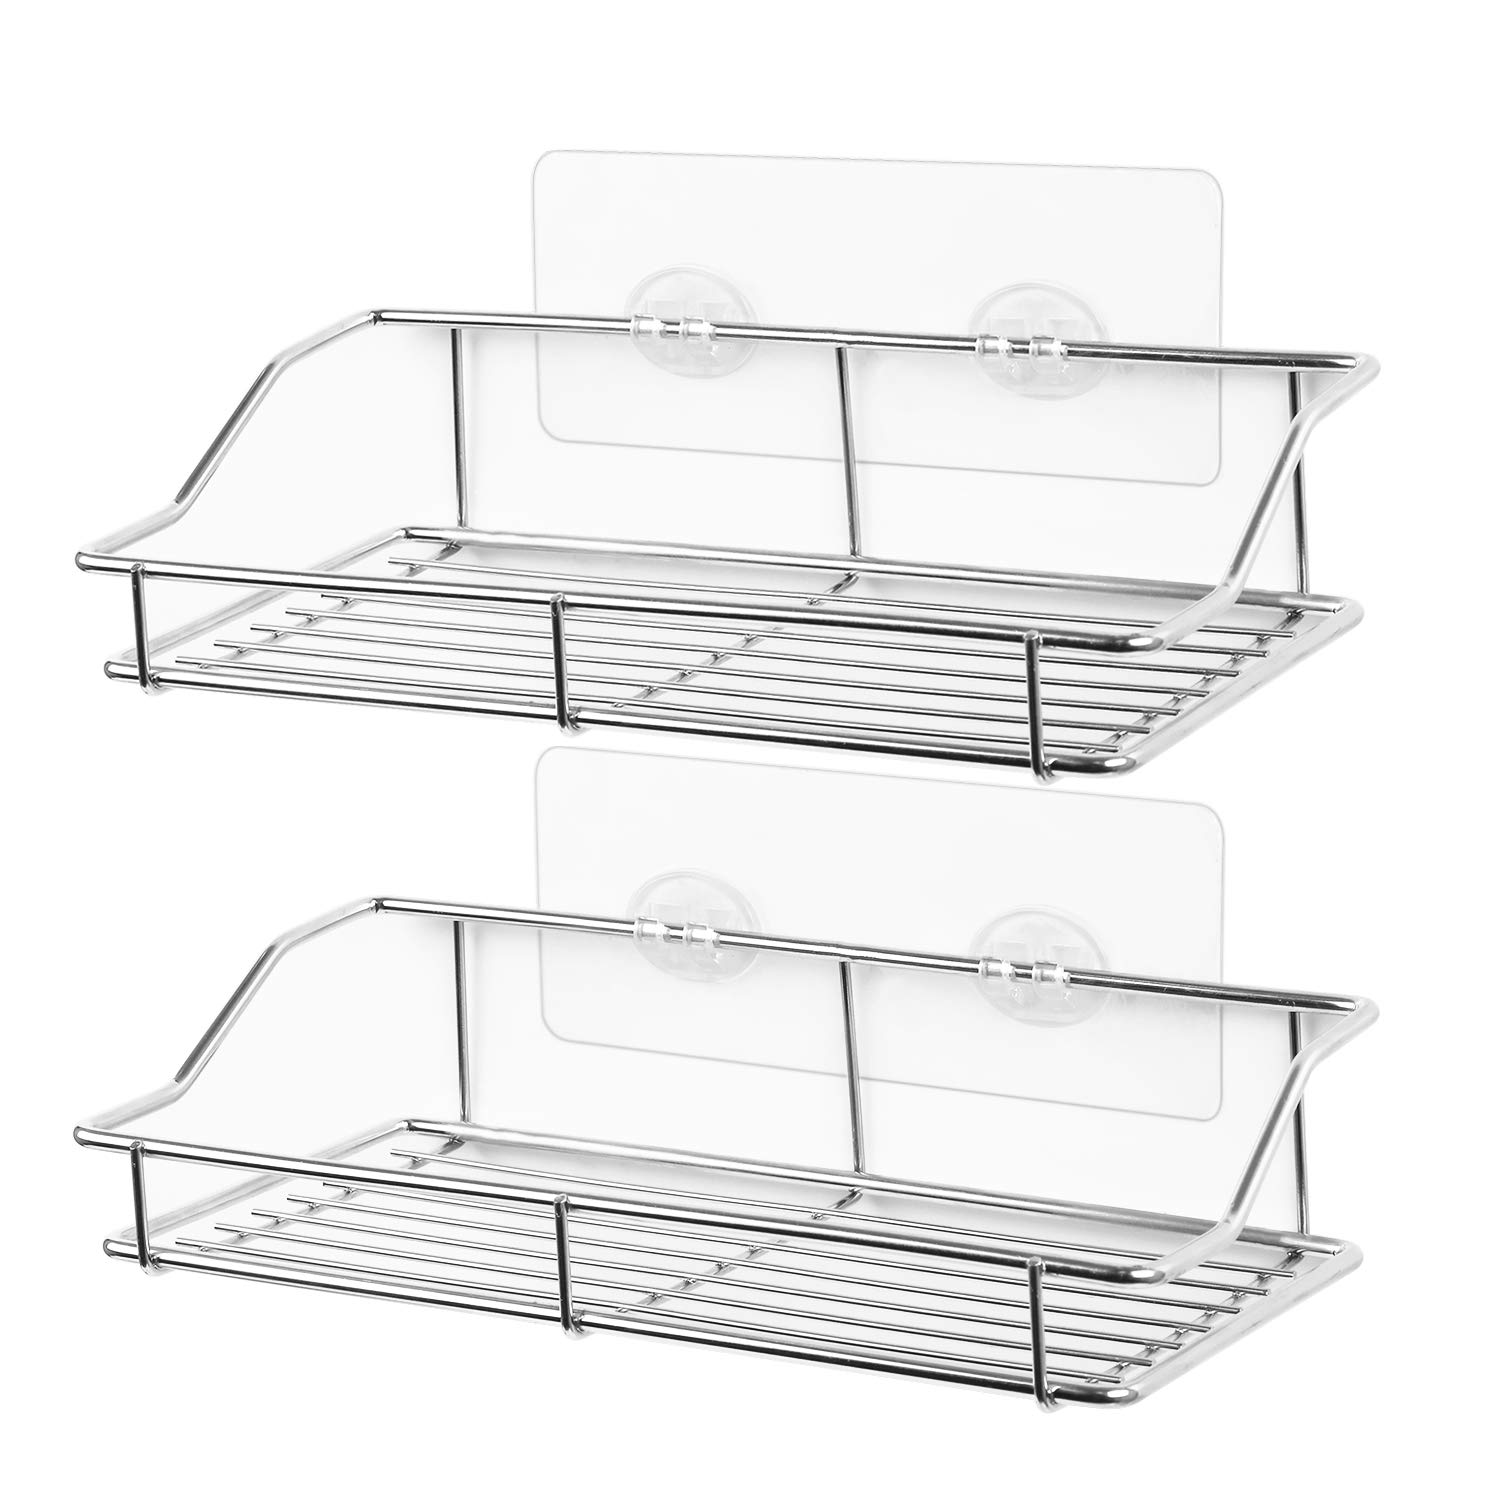 SMARTAKE [2-Pack] Bathroom Shelf, Wall Mounted Shower Caddy with Traceless Adhesive, No Drilling Storage Organizer Rack SUS304 Stainless Steel for Kitchen, Bathroom, Toilet (Silver)